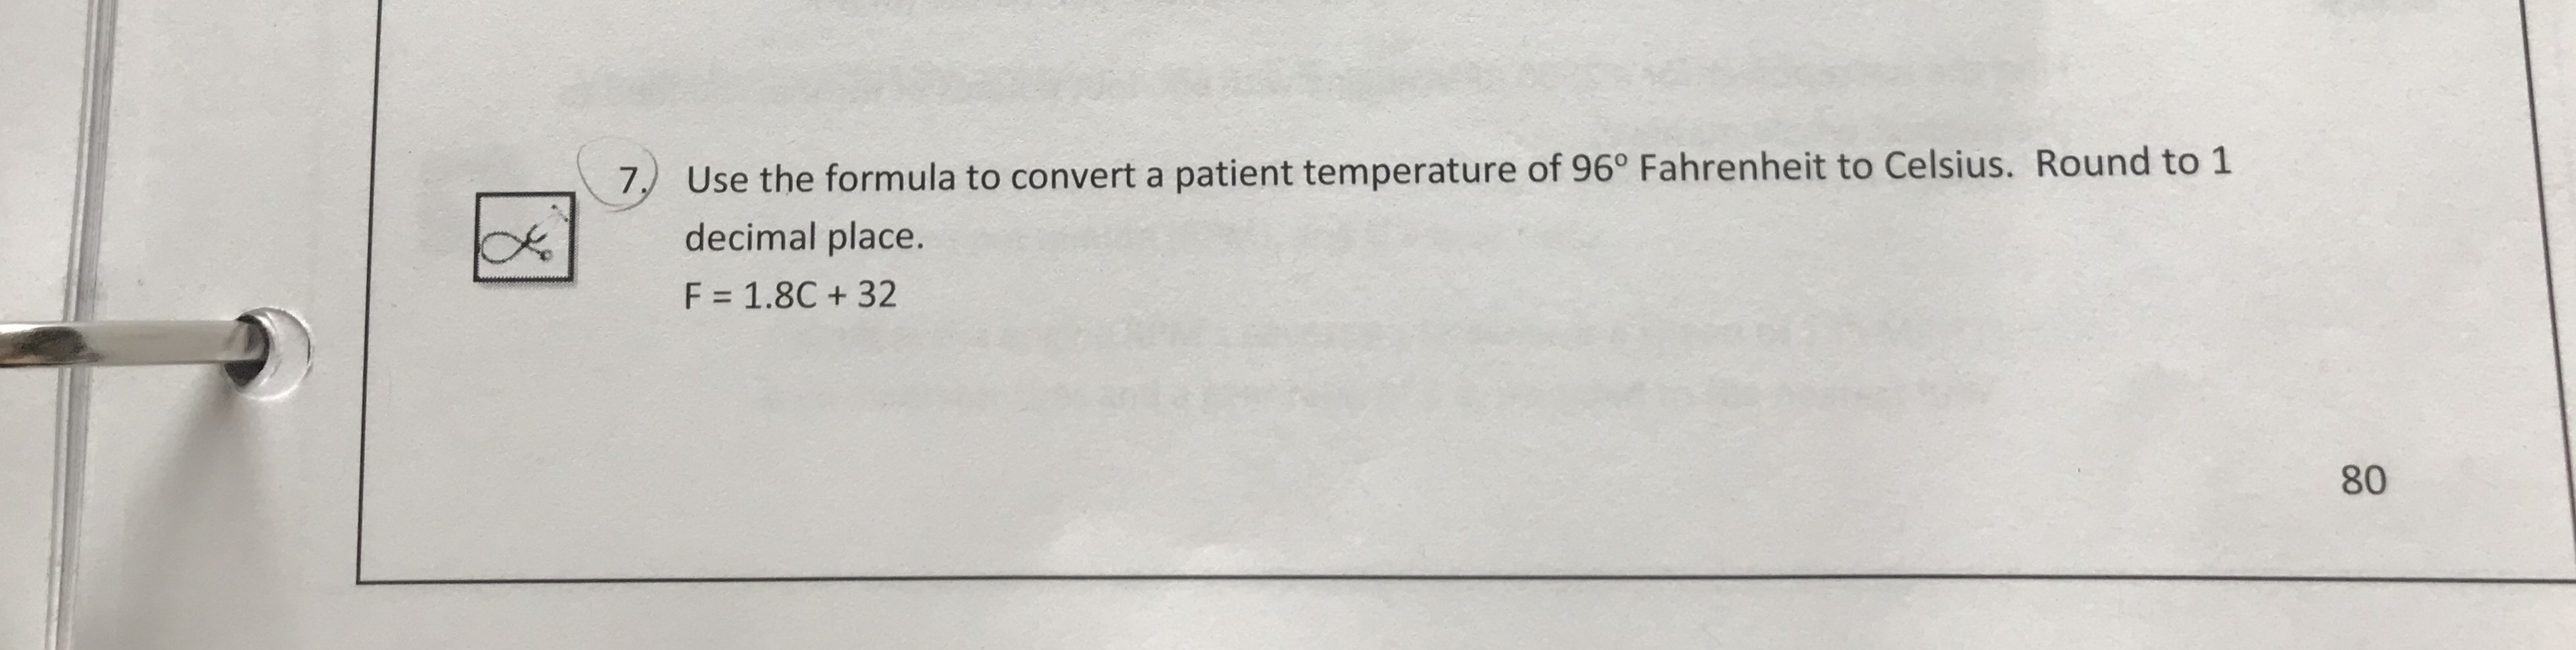 """Use the formula to convert a patient temperature of 96"""" Fahrenheit to Celsius. Round to 1 decimal place F = 1.8C + 32 7) 80"""